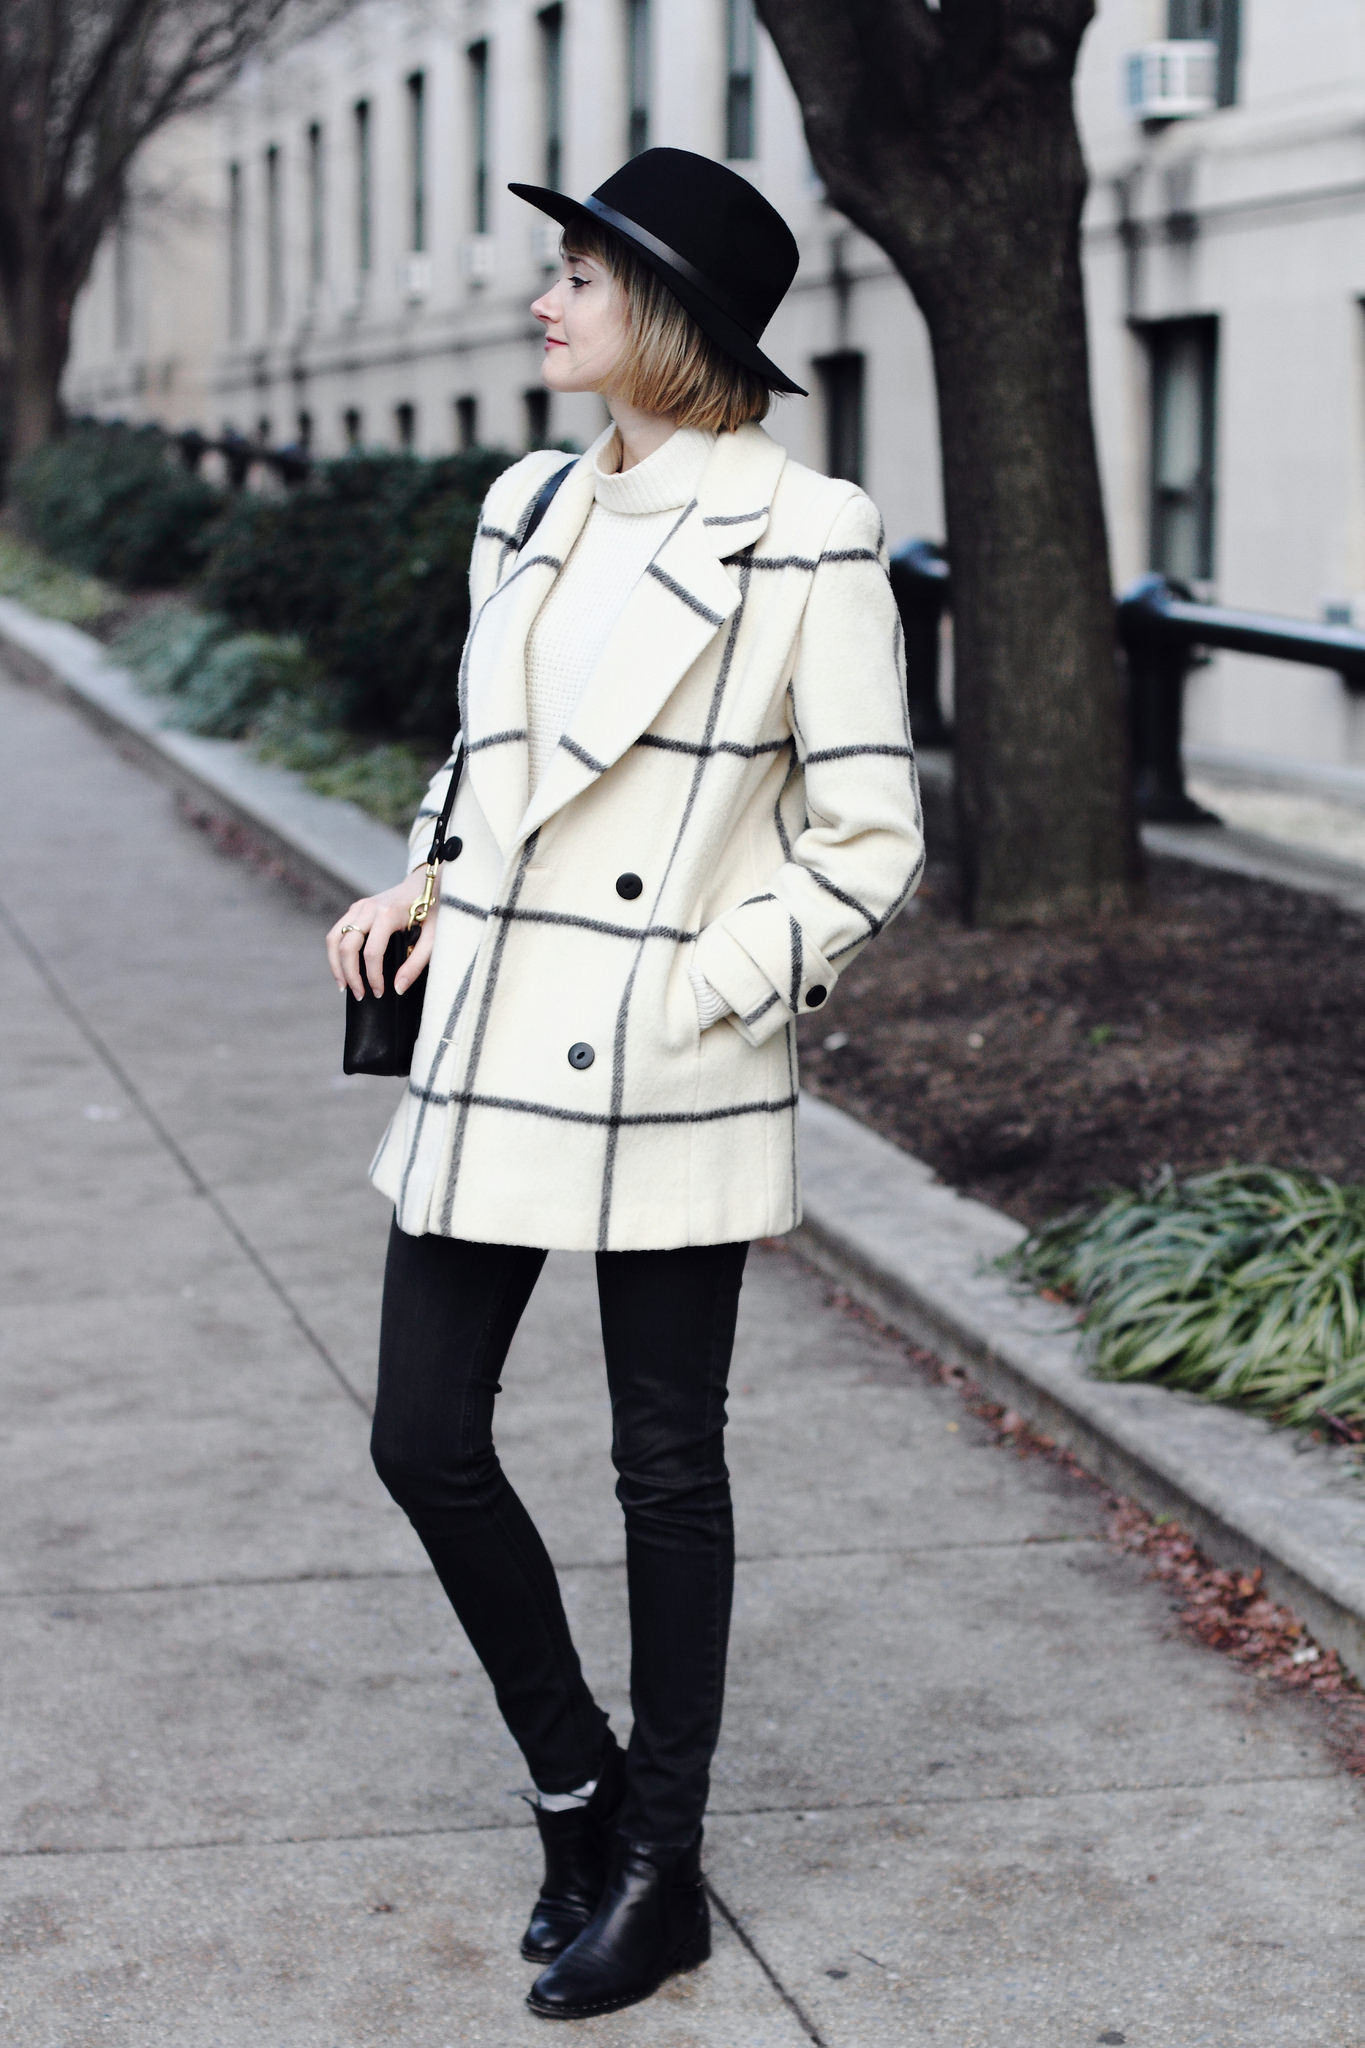 vintage check coat and black jeans